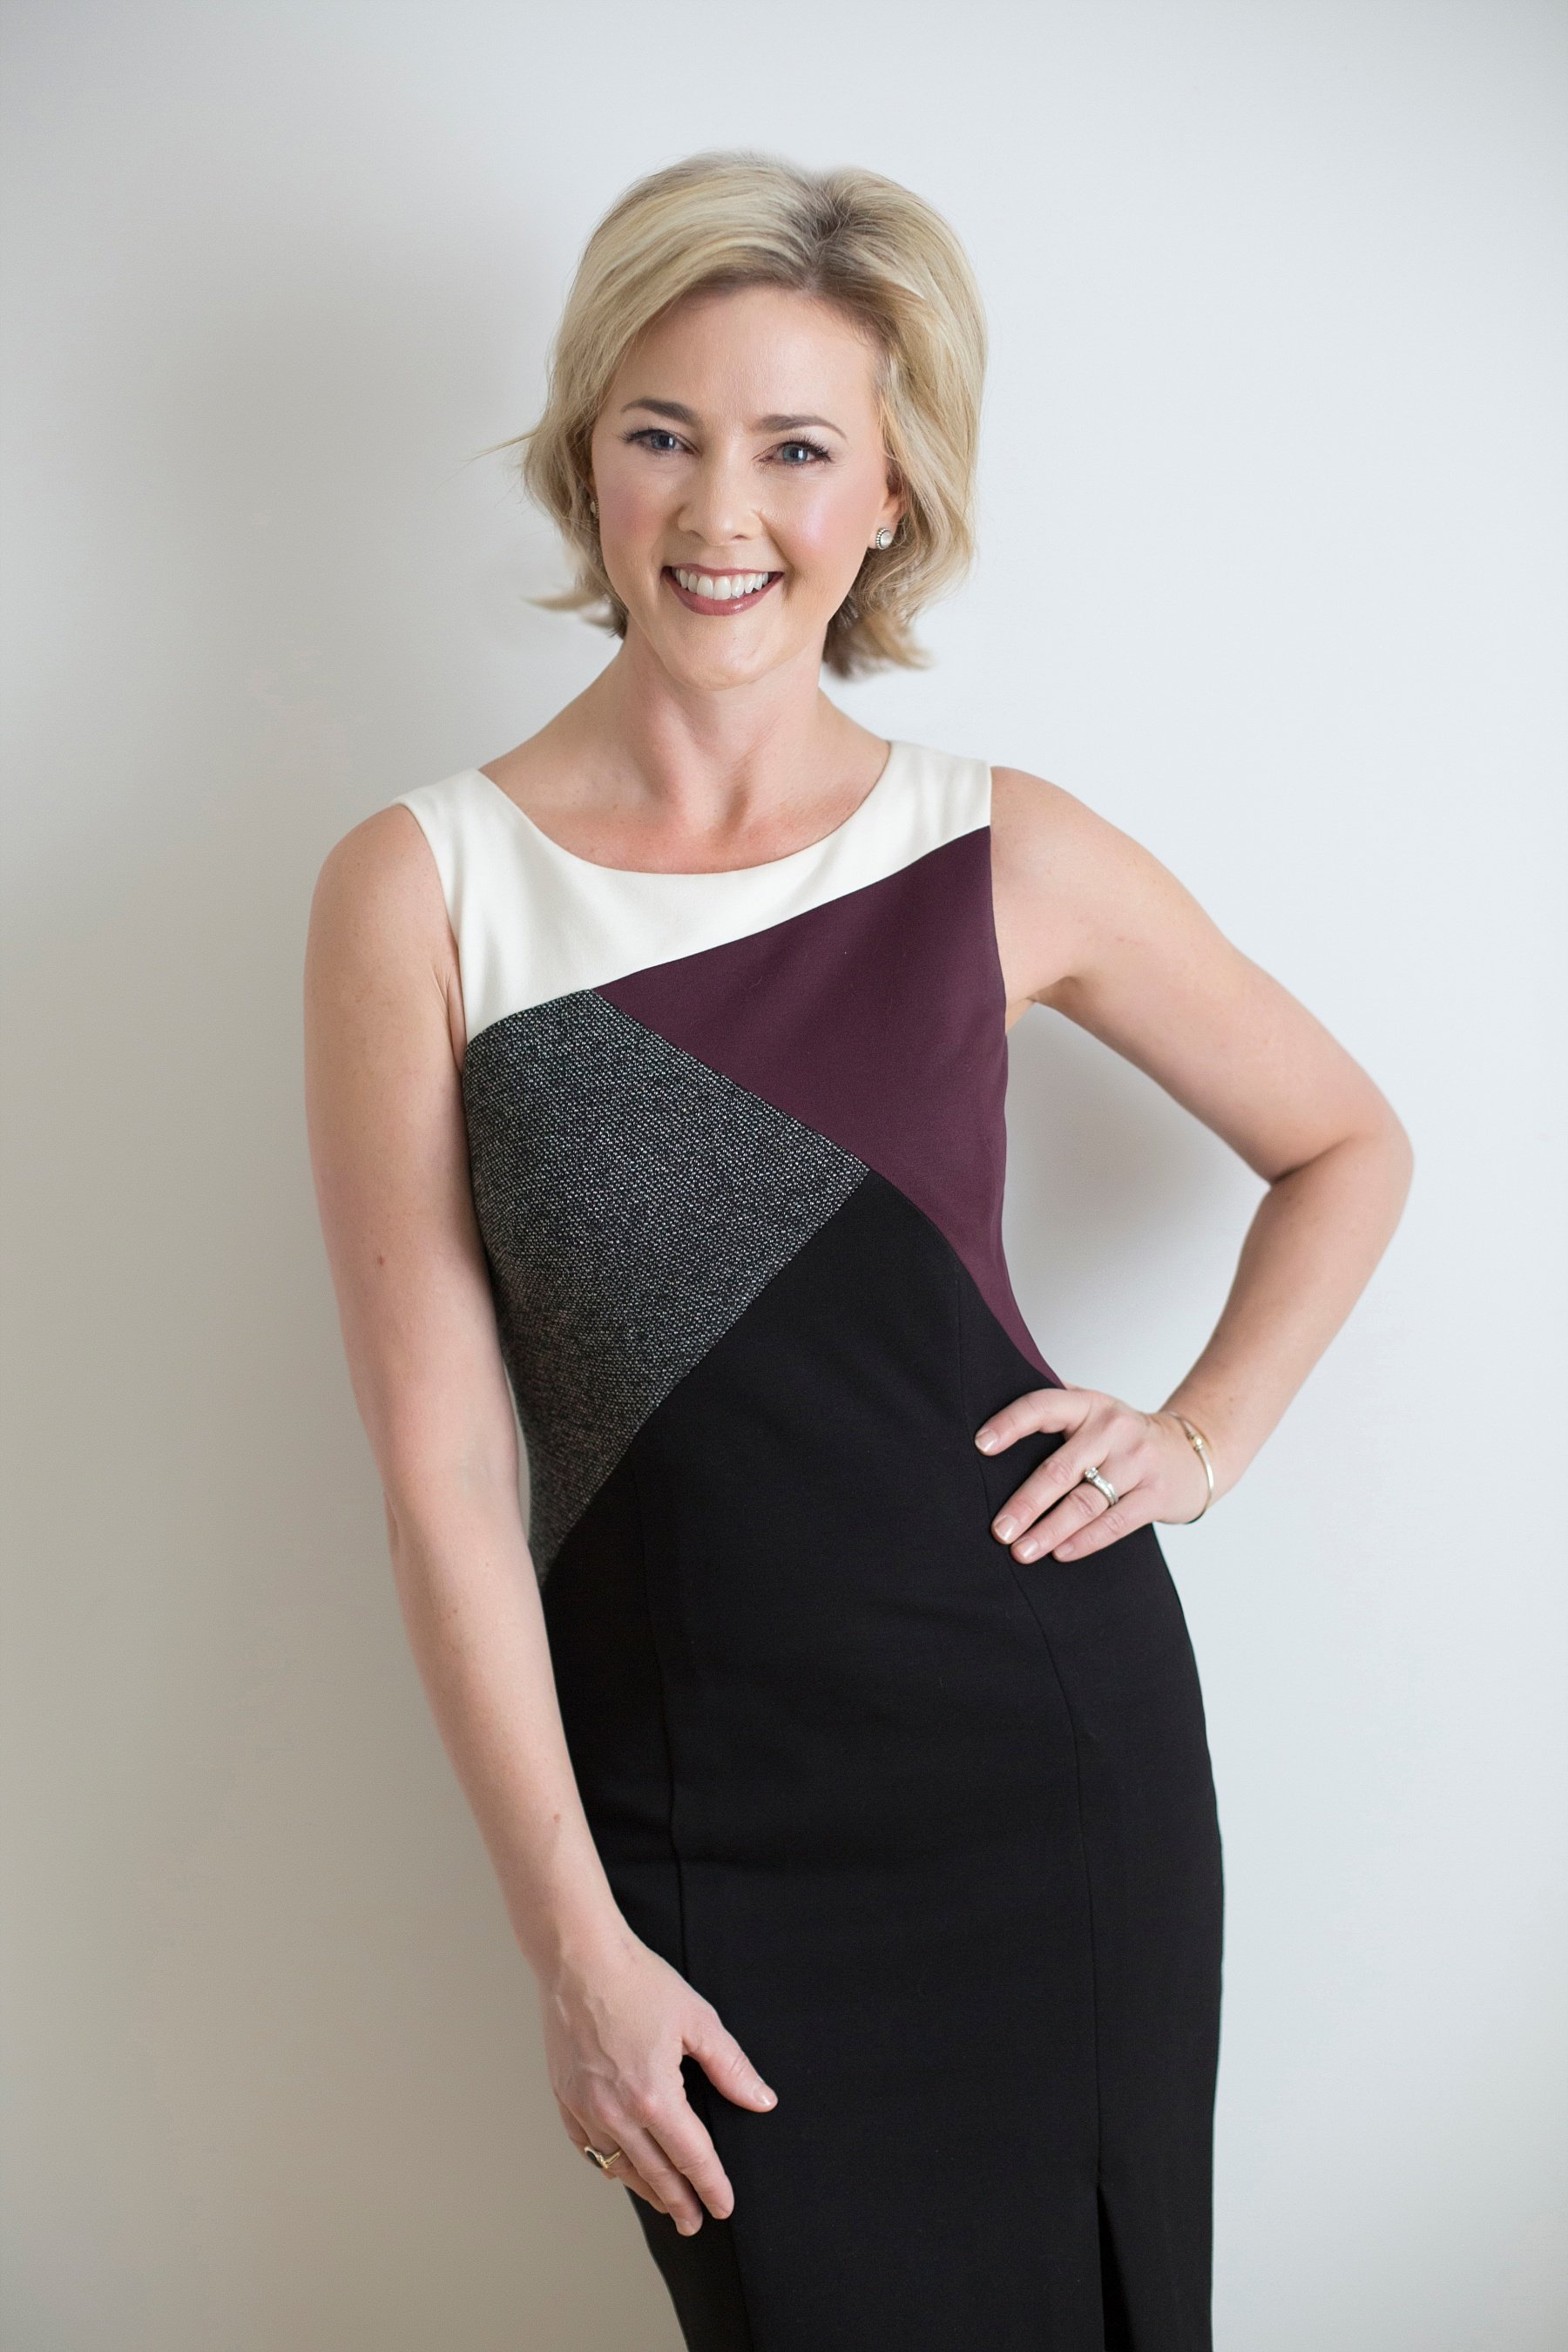 Allison Dunn in a dress as she smiles and poses with one hand on her hip.